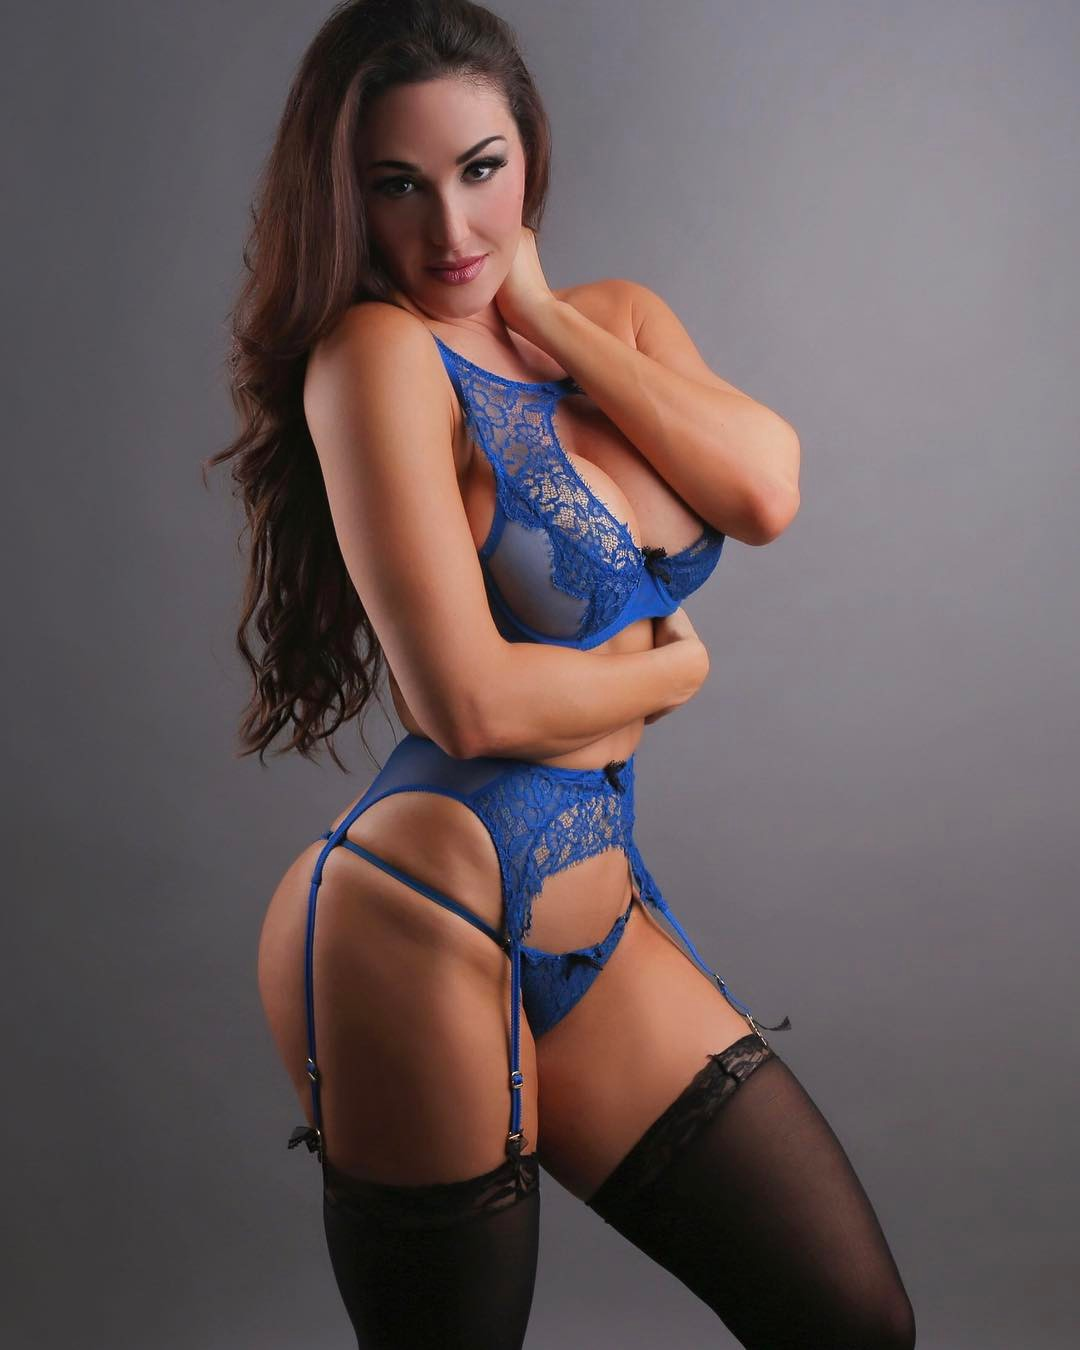 Independant Escorts In Blue Springs, Casual Sex